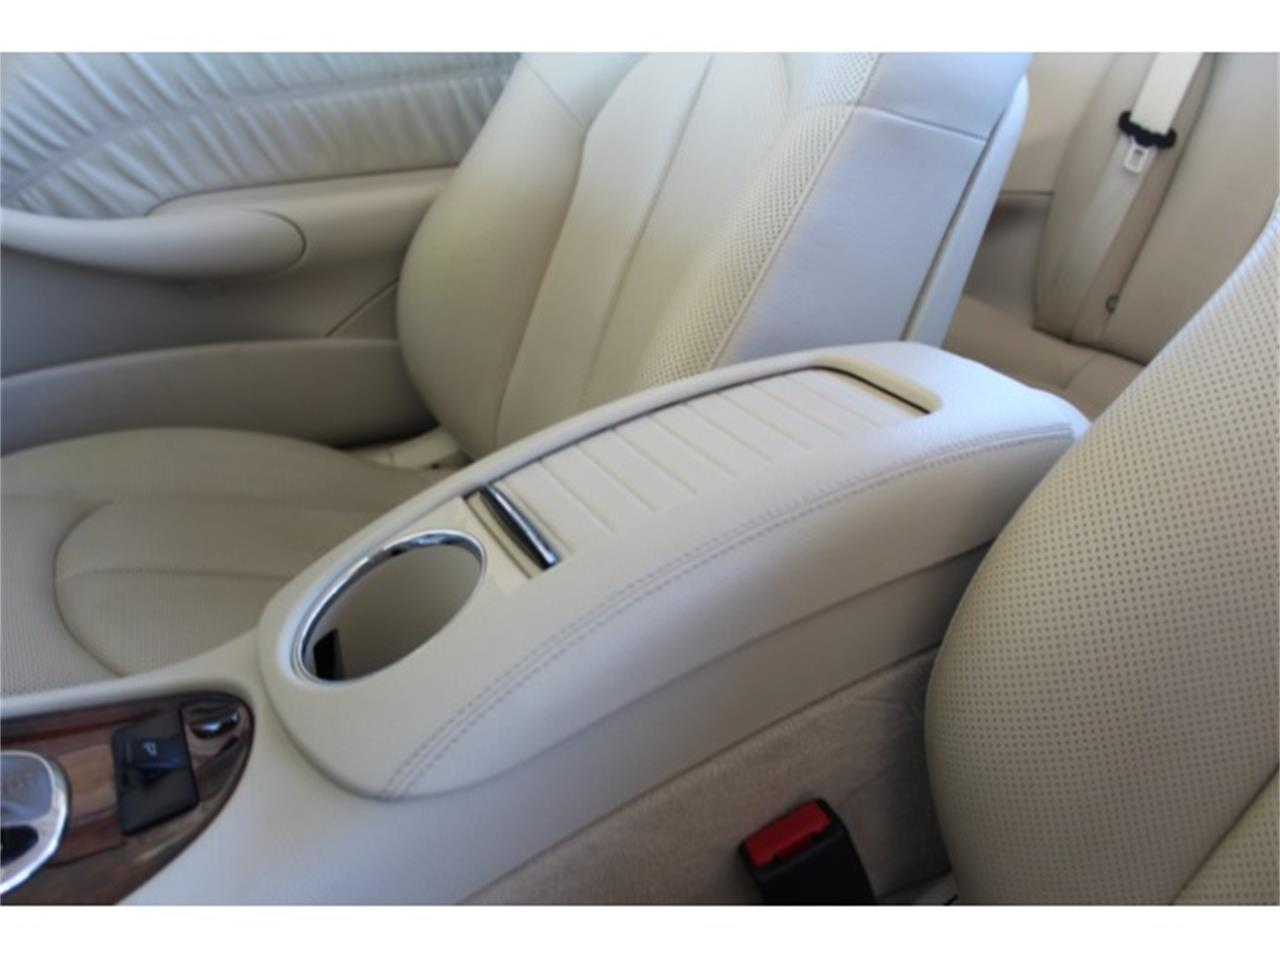 2007 Mercedes-Benz CLK-Class for sale in Sherman Oaks, CA – photo 16